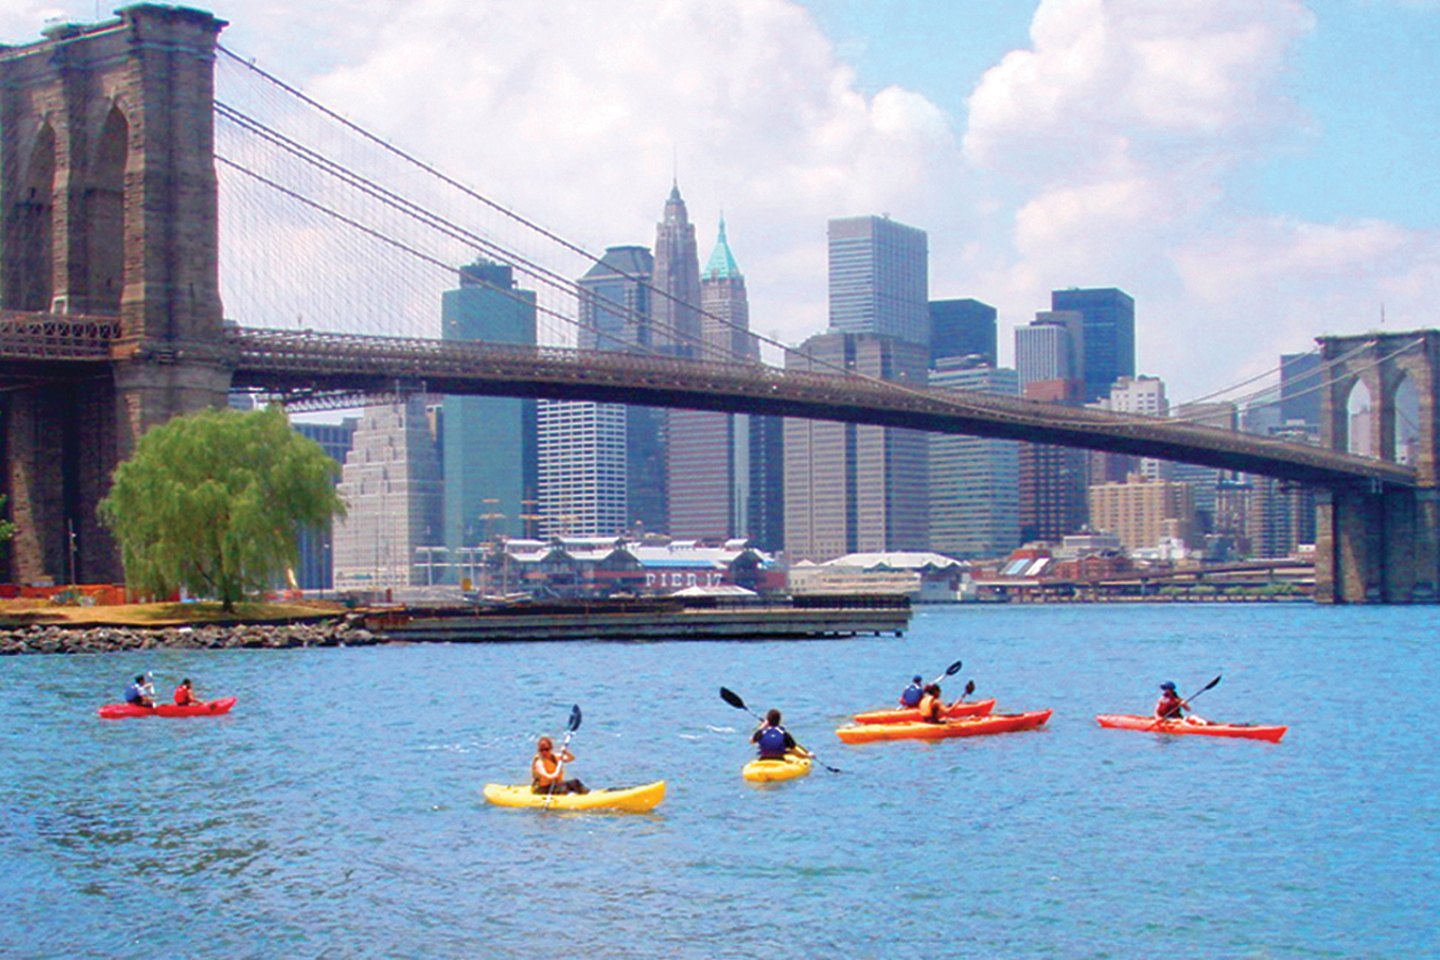 Free kayaking in New York: Where to kayak on NYC's waterways